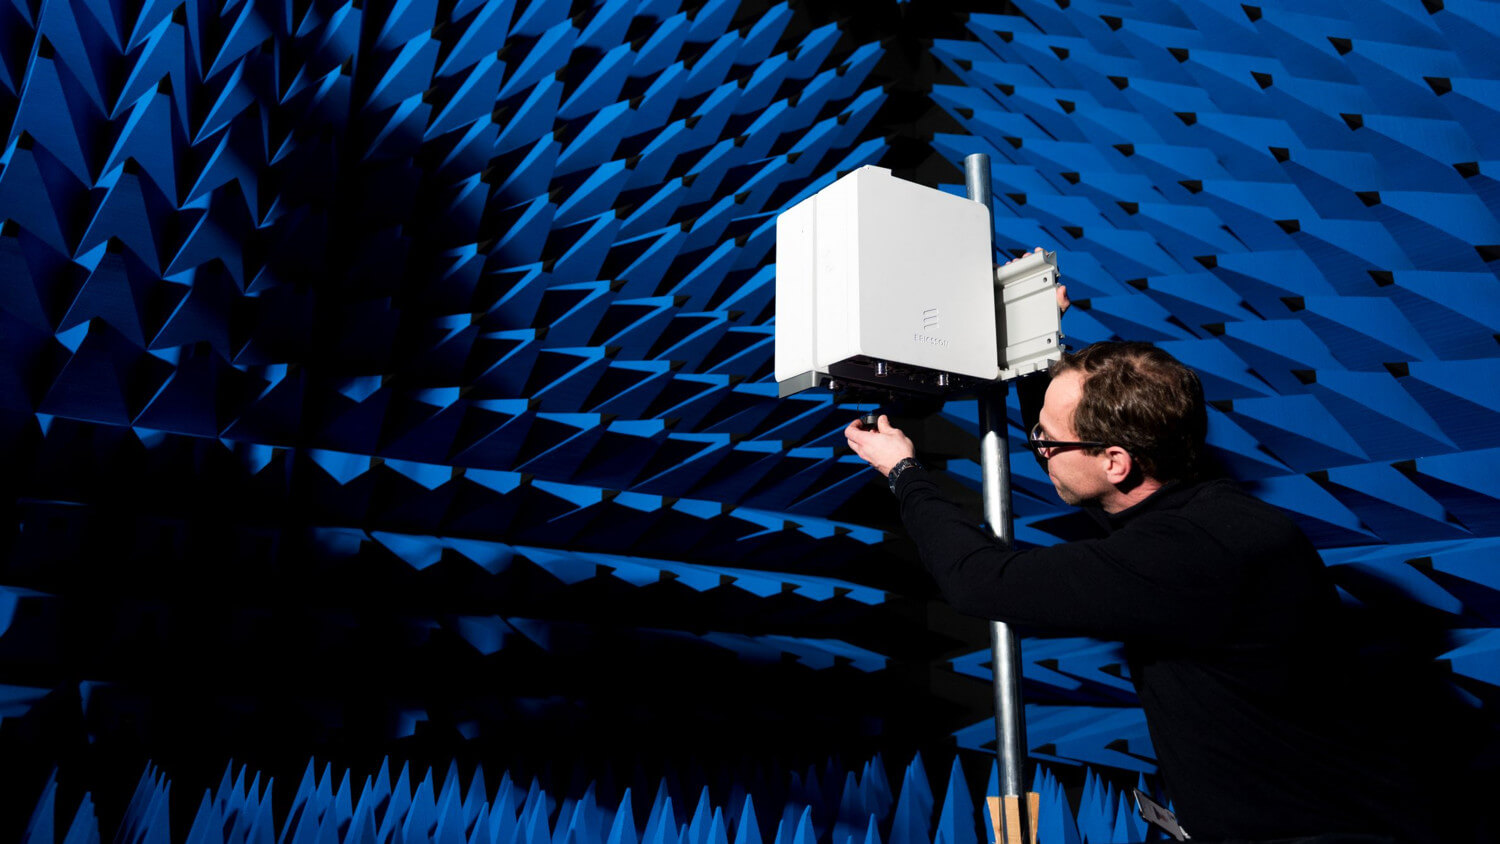 Ericsson and Deutsche Telekom have developed a wireless 40 Gbps